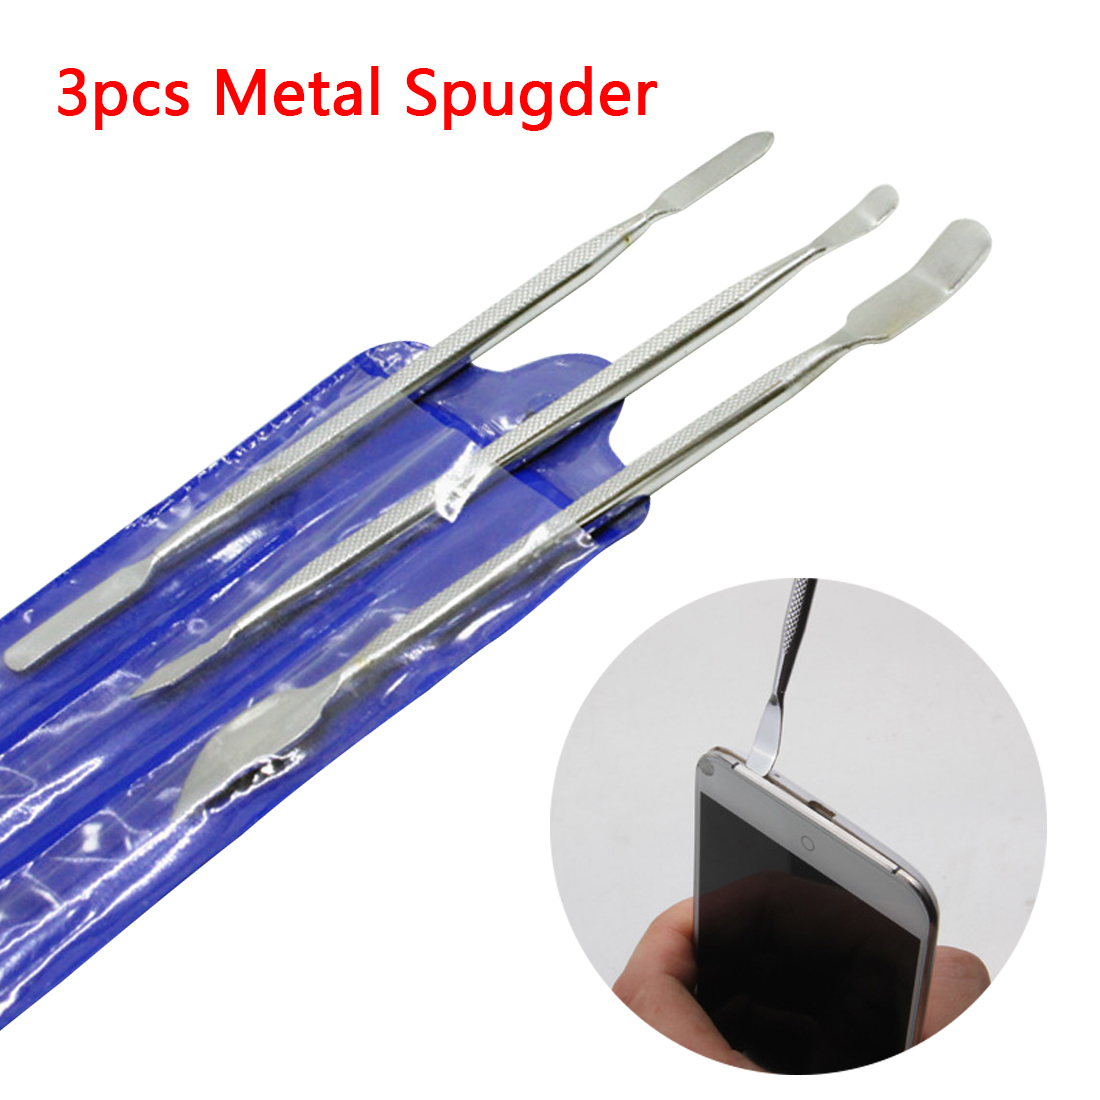 COMPLETE STEEL  PRYING TOOL SET FOR MOBILE PHONE,TABLETS,IPHONE,SAMSUNG,